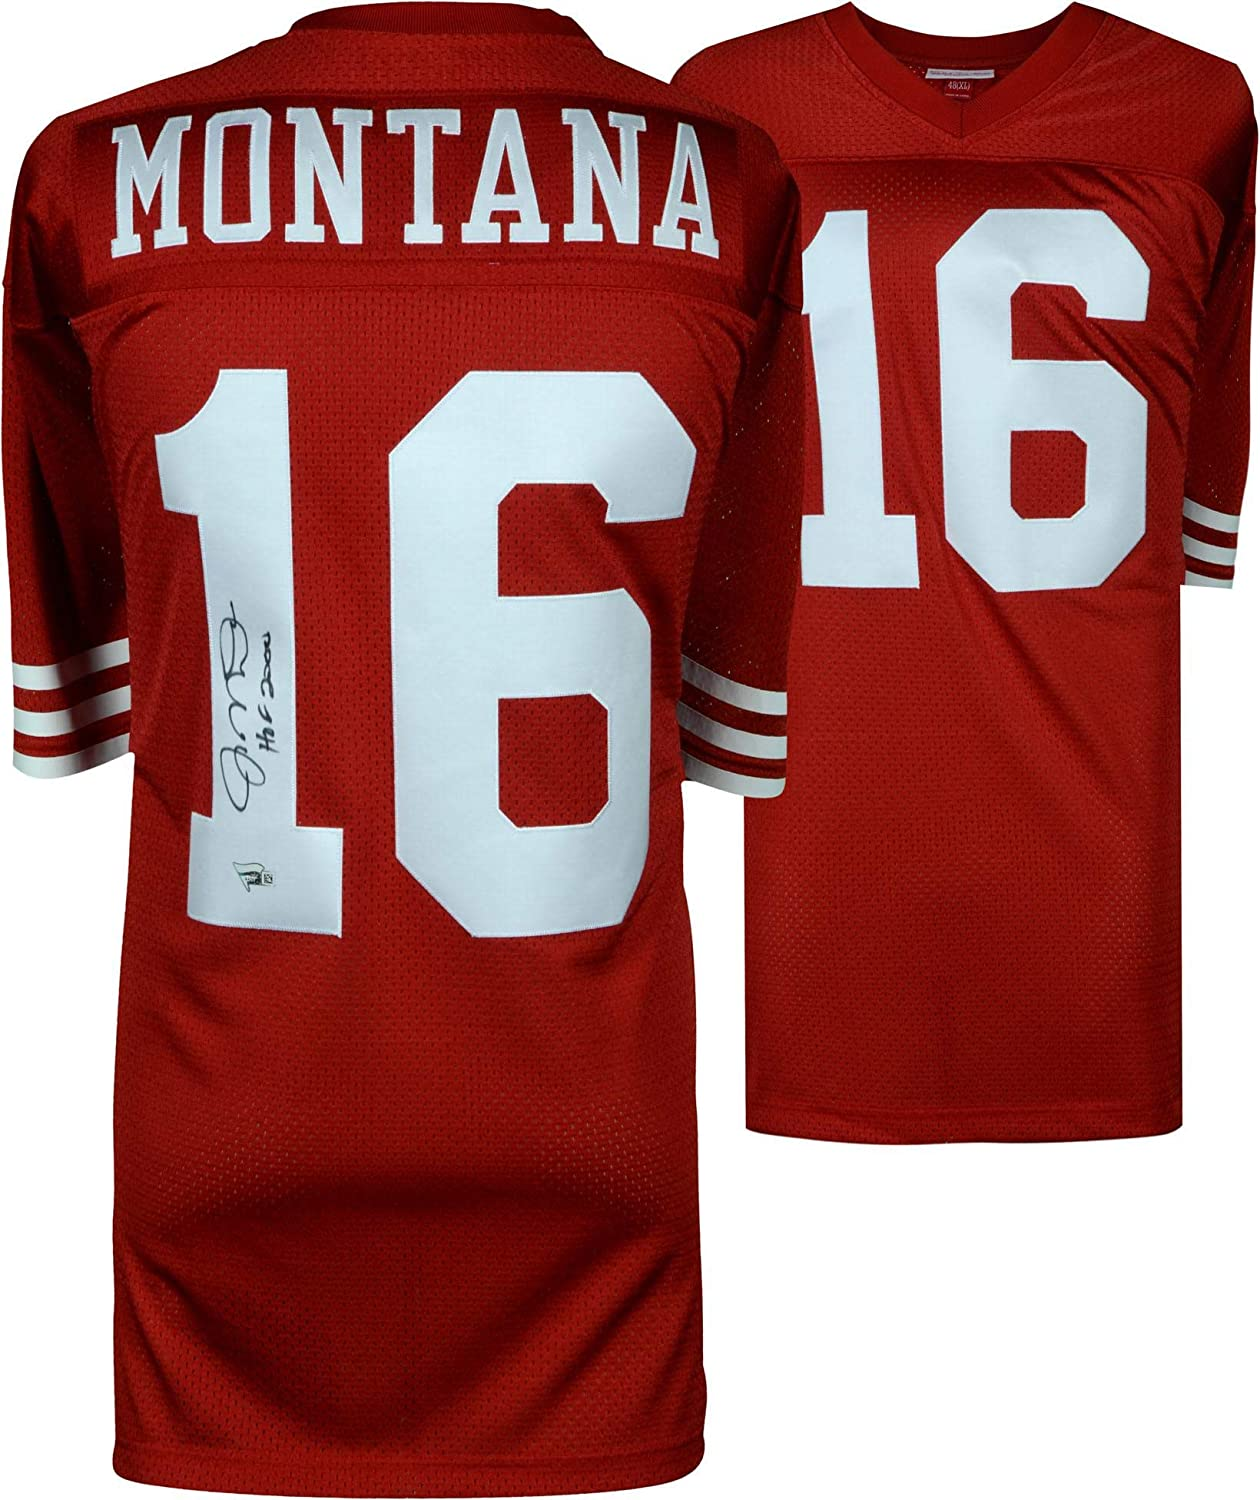 new style cf89d 4cd50 Joe Montana San Francisco 49ers Autographed Mitchell & Ness ...